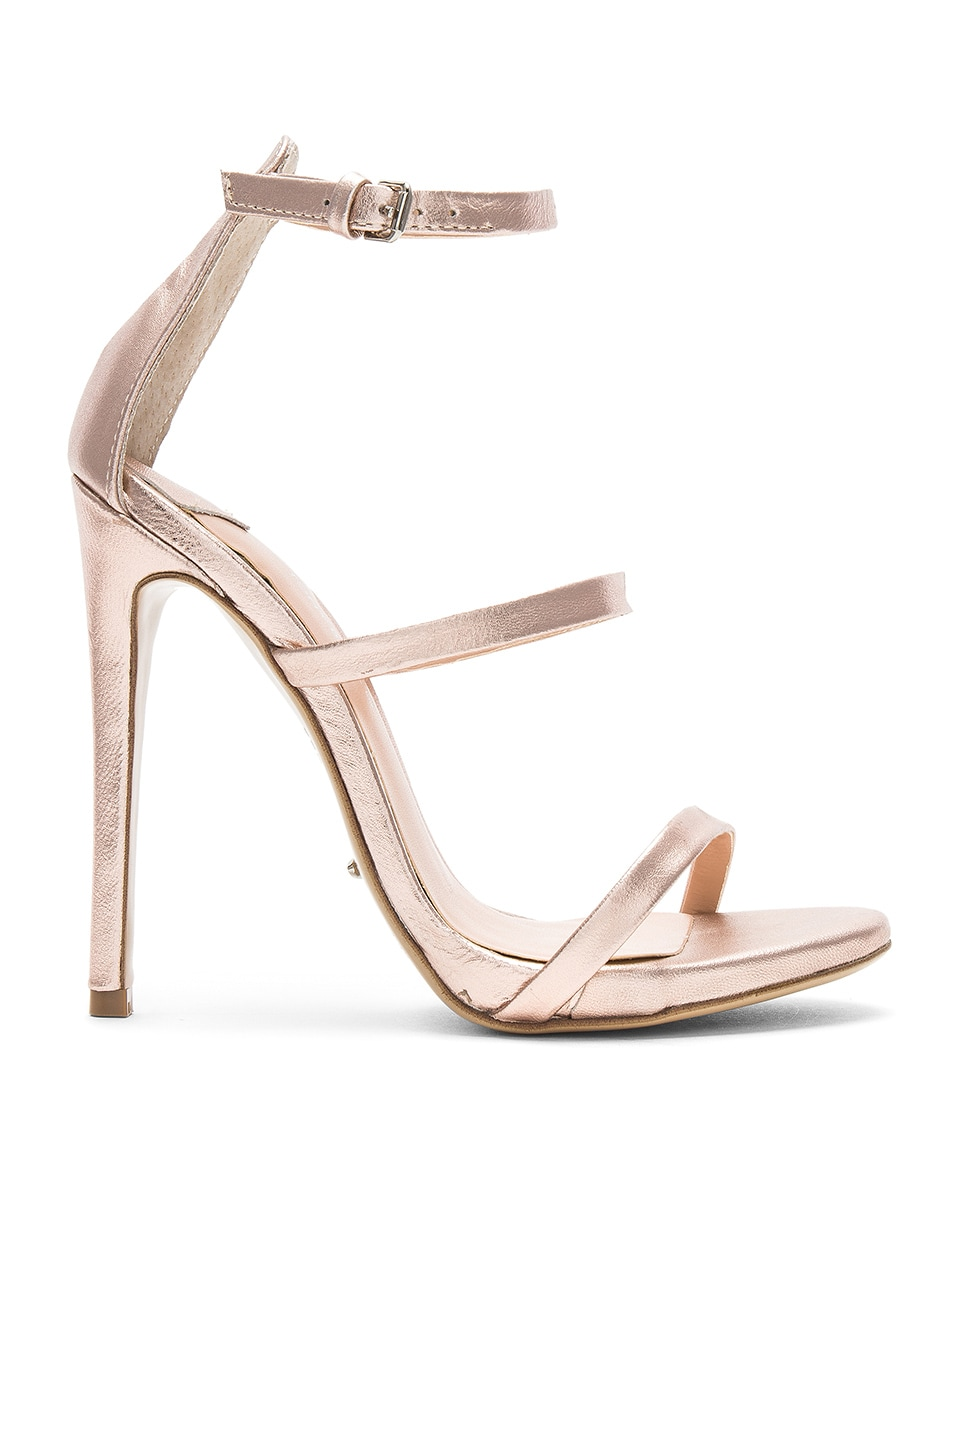 Tony Bianco Atkins Heel in Rose Gold Matt Metallic